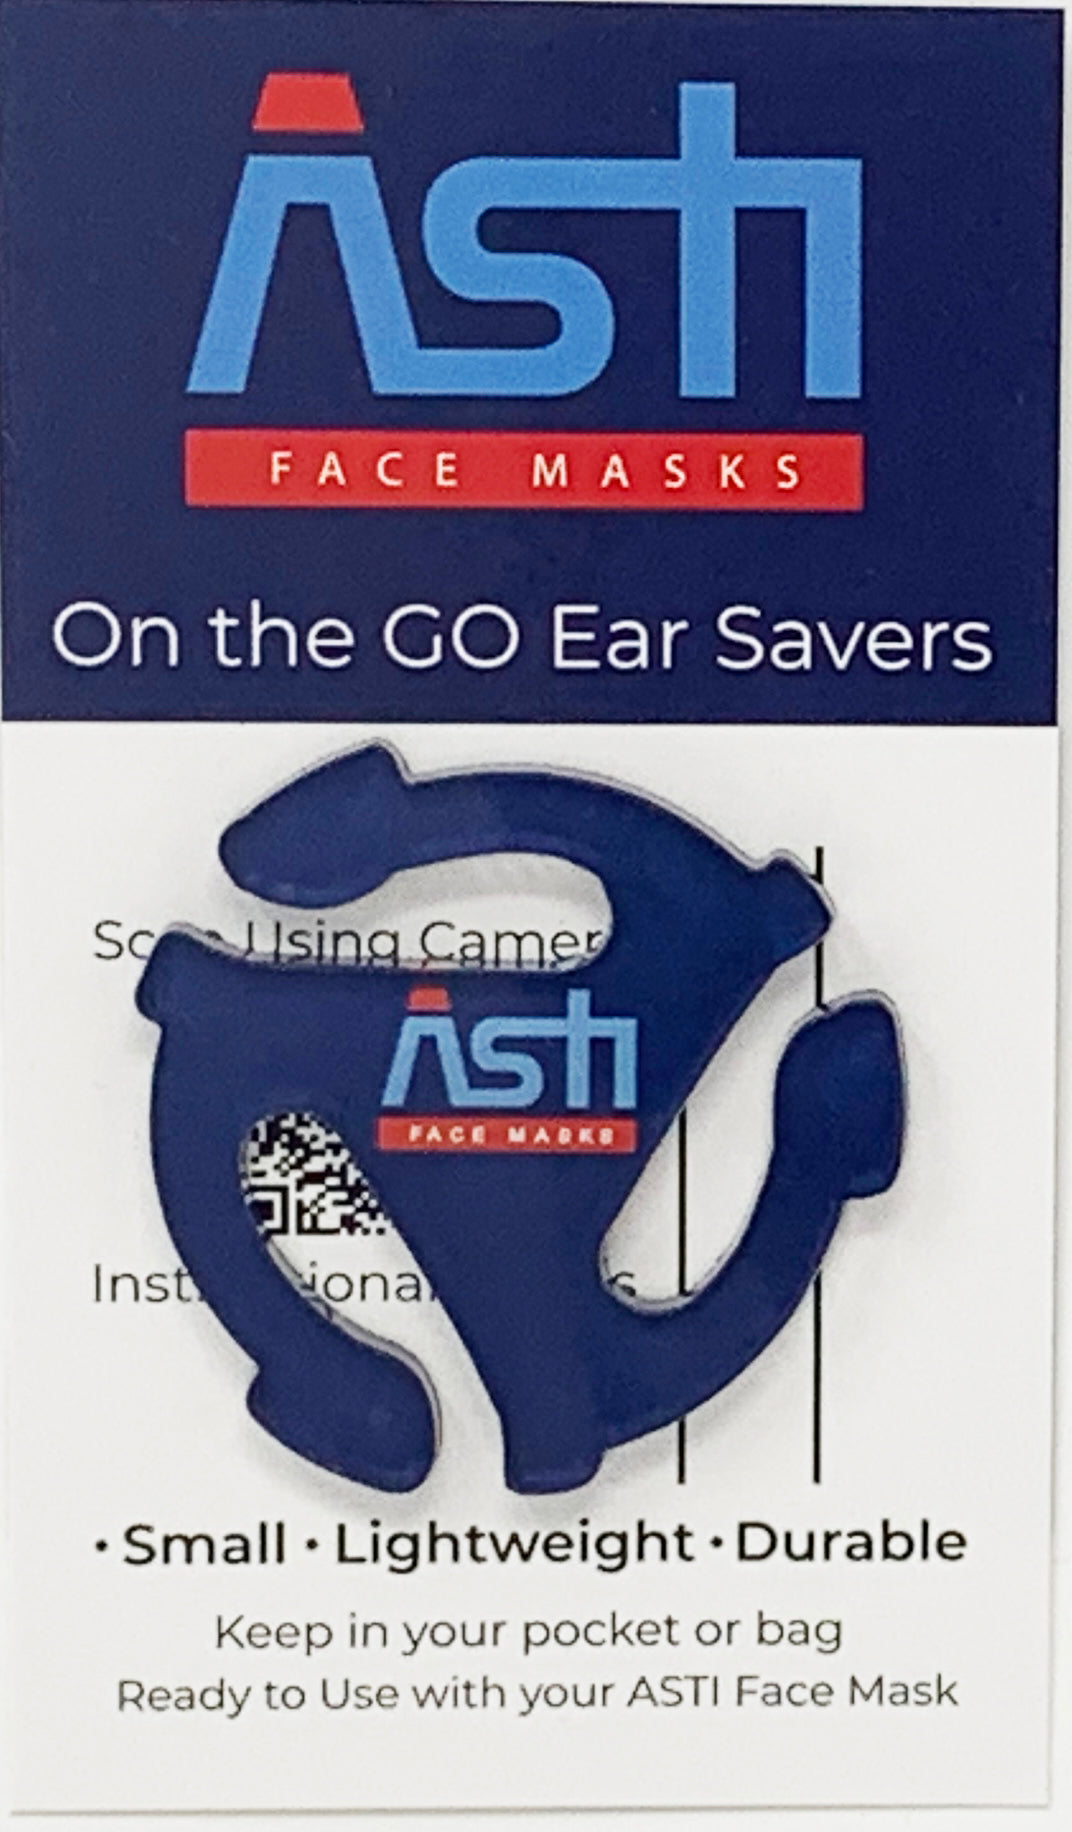 ASTI On The Go Ear Savers